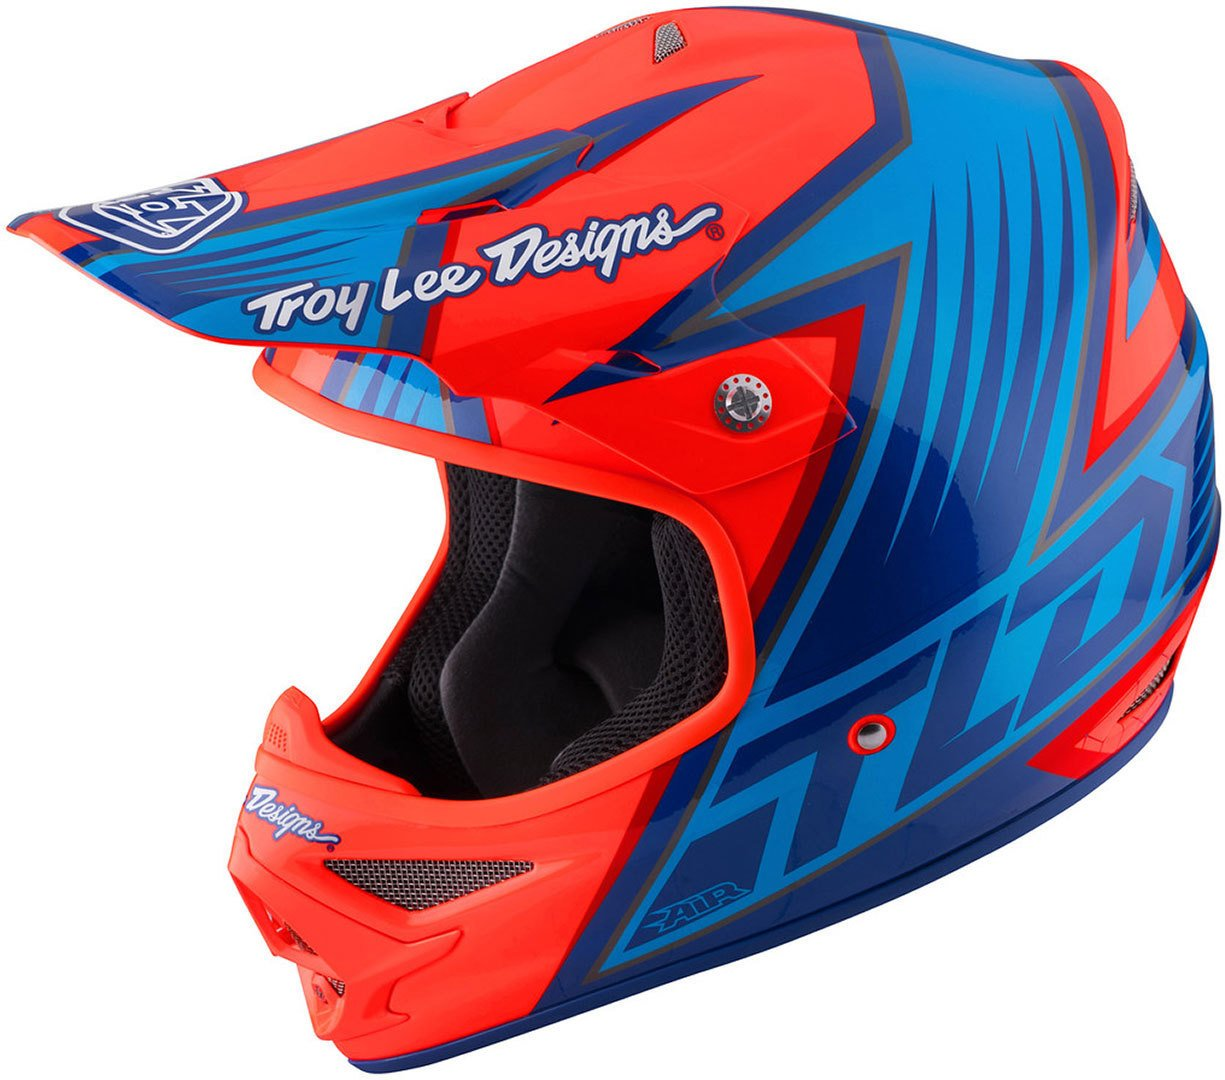 Amazon.es: Casco Mx Troy Lee Designs 2017 Air Vengeance Anaranjado (L, Anaranjado)